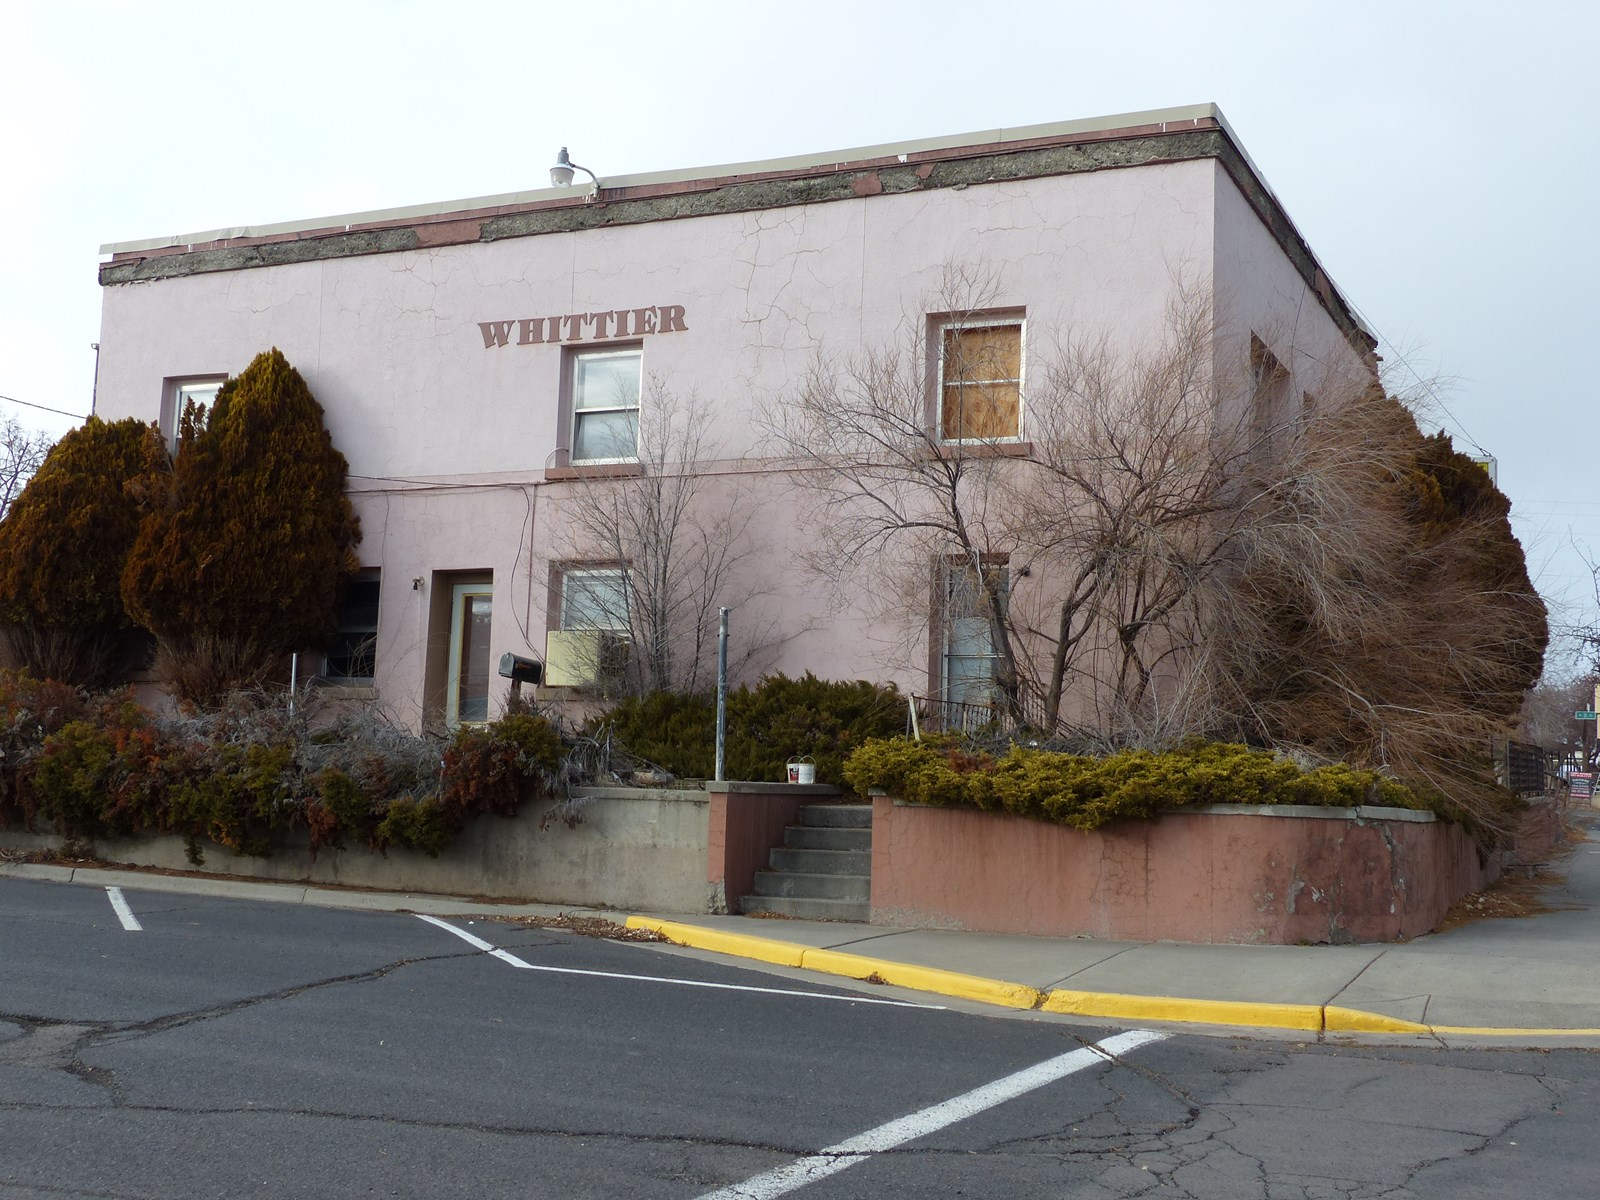 HISTORIC WHITTIER HOTEL FOR SALE IN DOWNTOWN BURNS OR